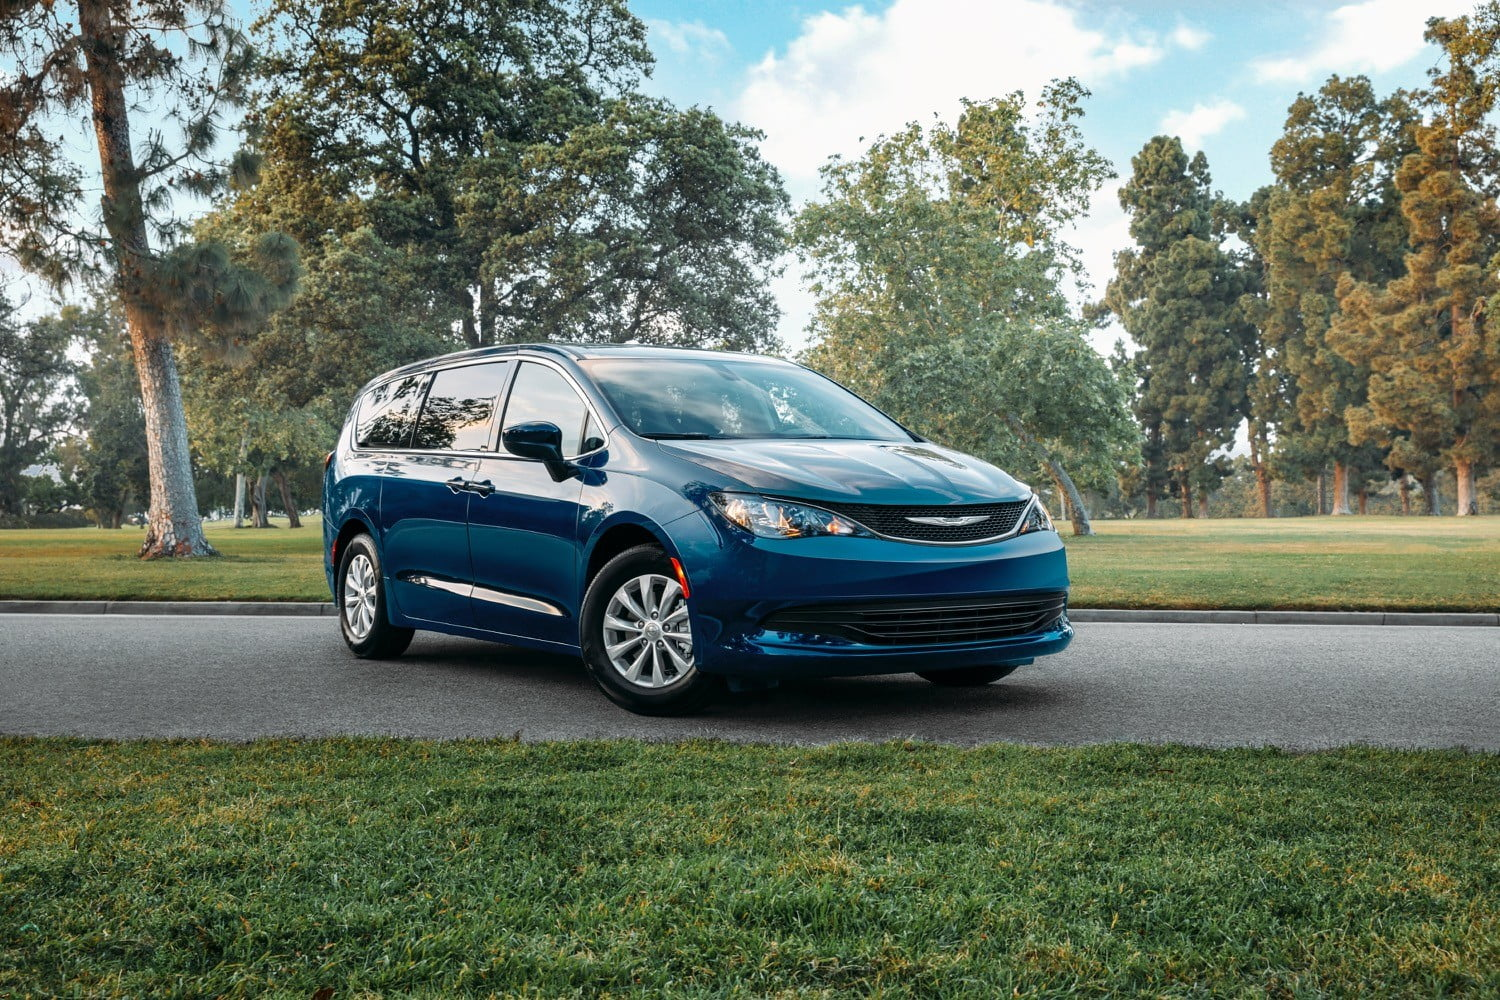 The Chrysler Voyager returns as a minivan for budget-conscious families